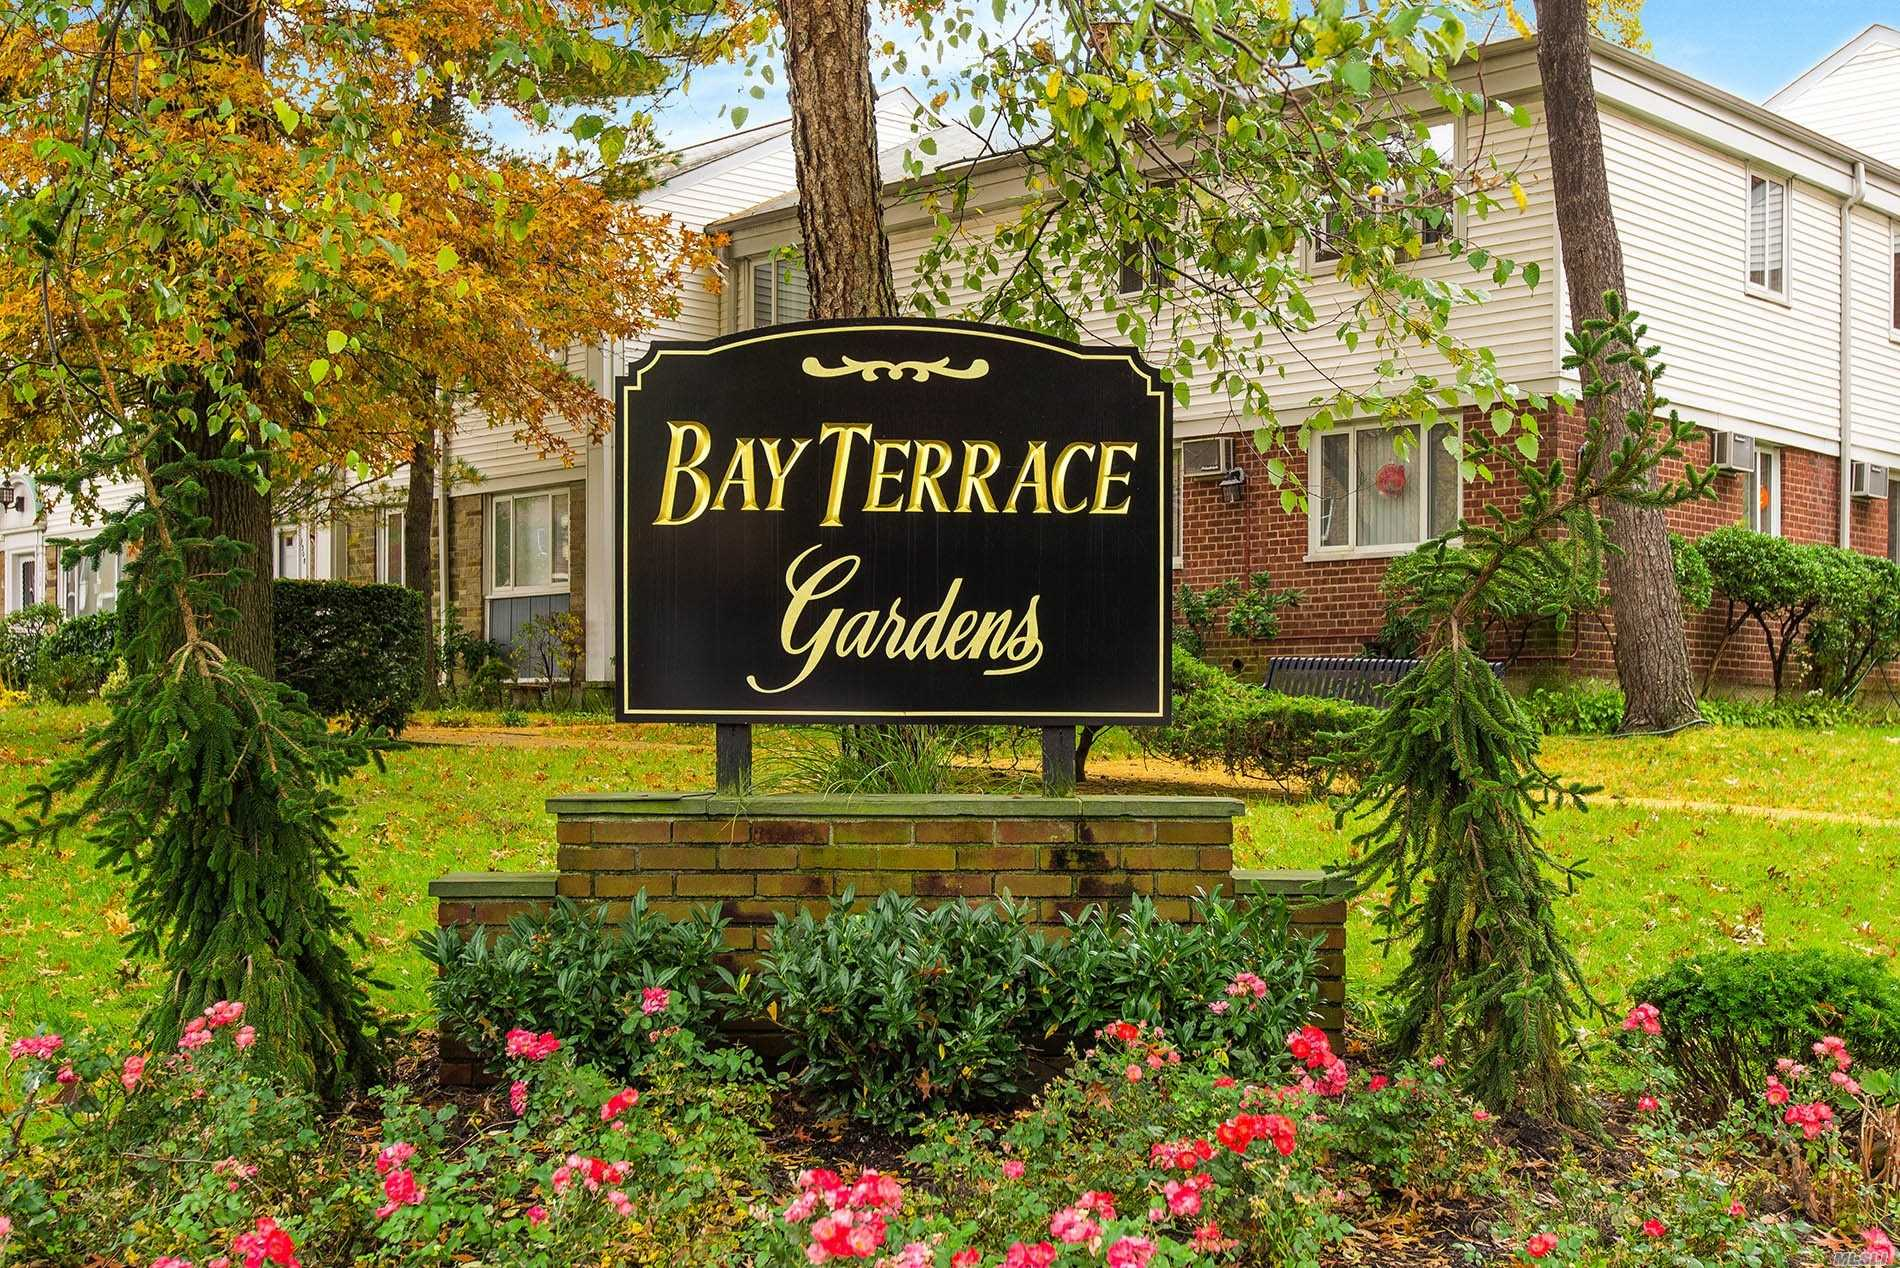 1st Floor Corner Apartment, 3 Bedrooms, 2 Full Baths, Wood Floors, Needs Tlc, Maintenance Of $954.36 Includes Fees For 3 A/C, Dishwasher, Heat And Electric. 1 Parking Space Fee Is $18. Washer And Dryer Allowed With Permit And Approval From Coop. Close To Schools, Shopping And Transportation.